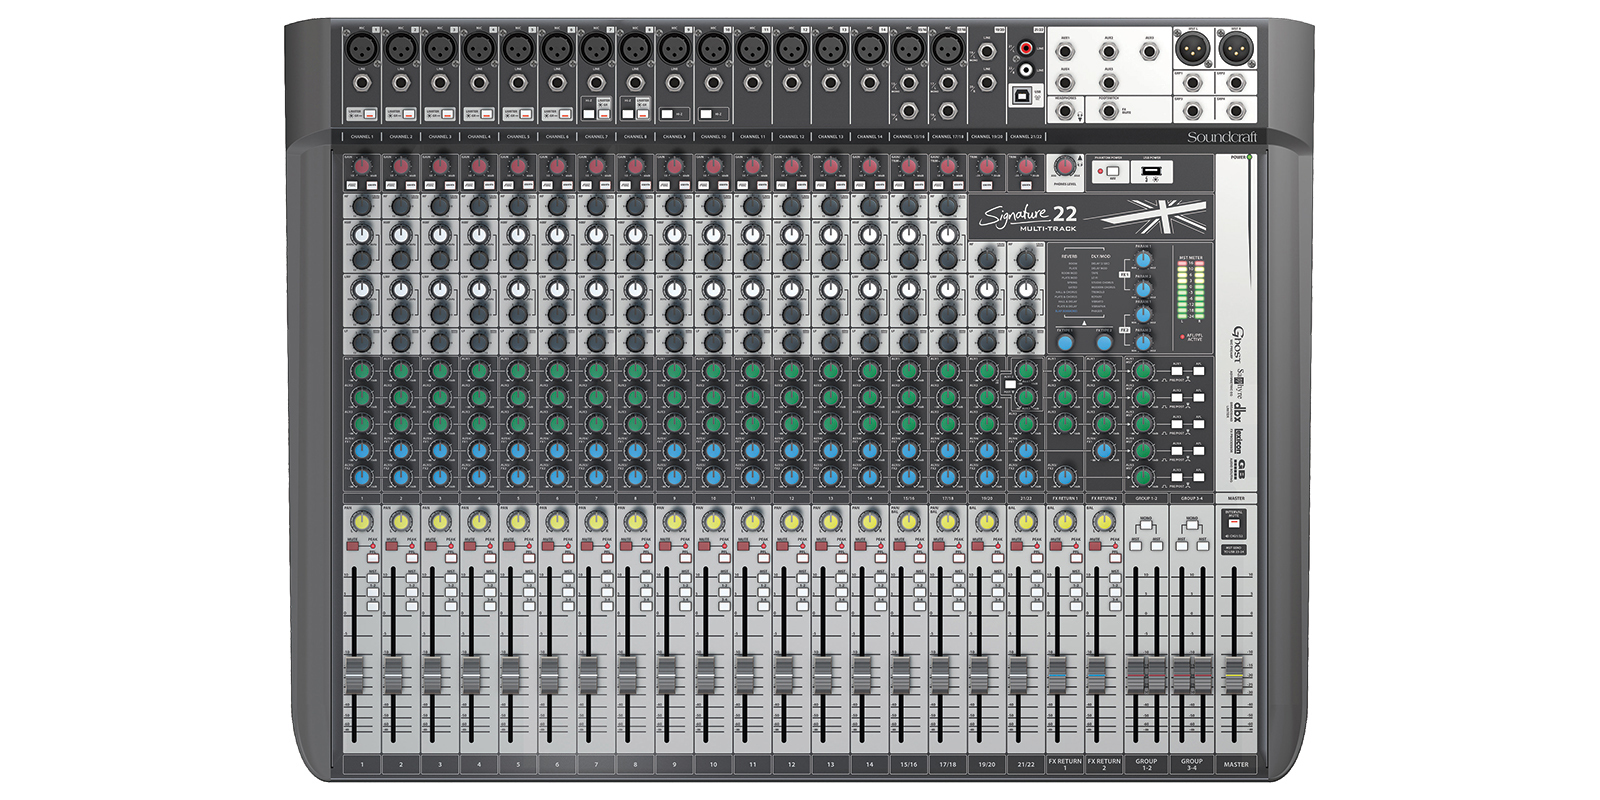 Soundcraft Signature 22 MTK mixer 00860